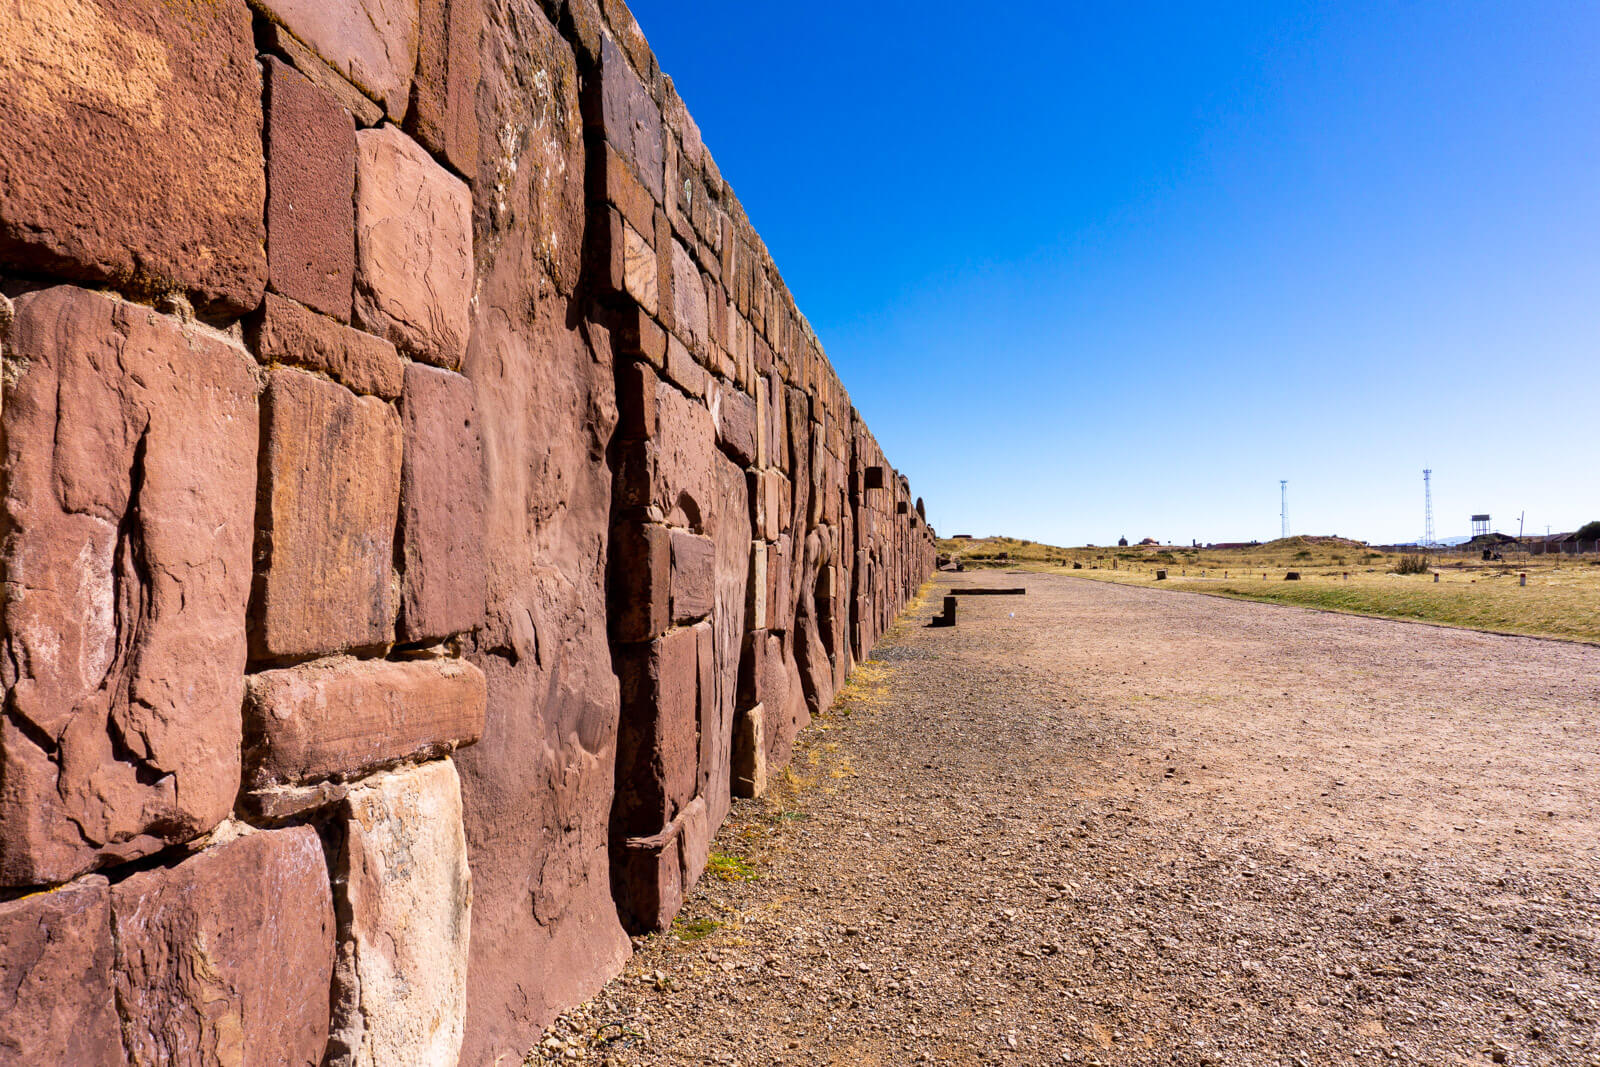 The Blocks at Tiwanaku Ruins, Bolivia